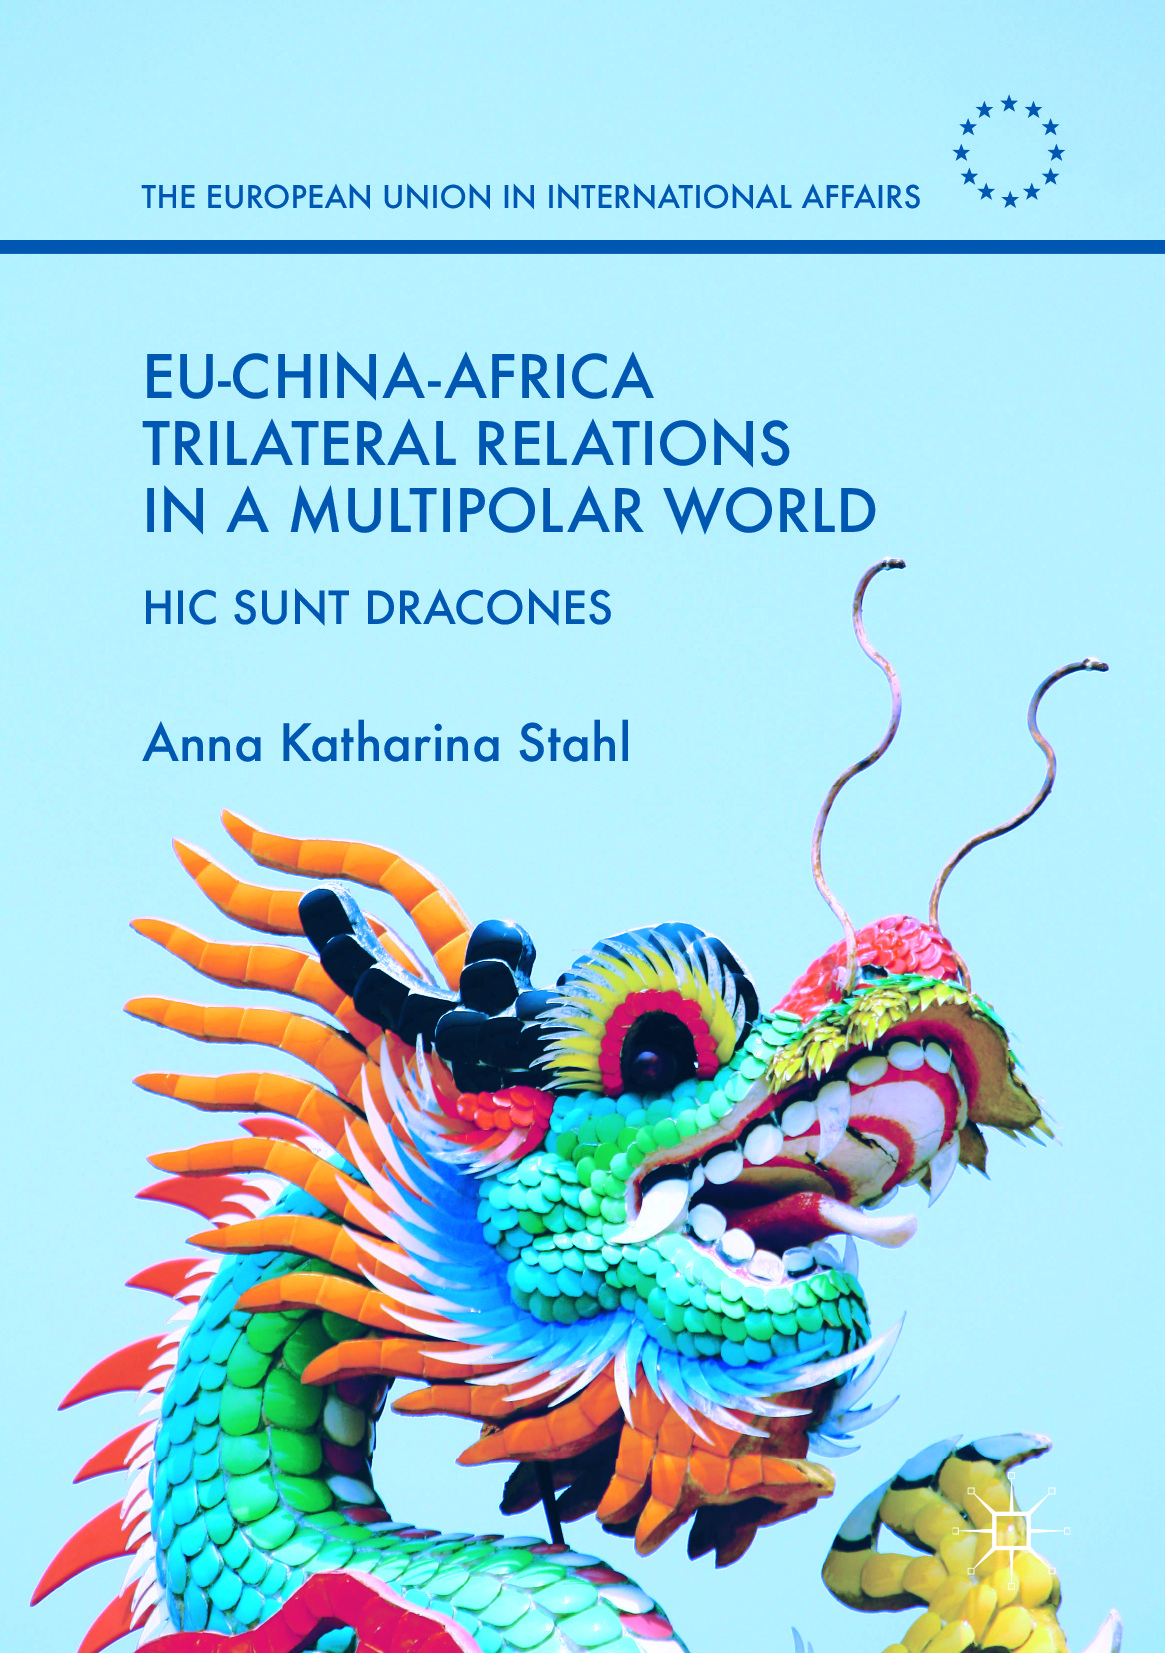 Stahl, Anna Katharina - EU-China-Africa Trilateral Relations in a Multipolar World, ebook